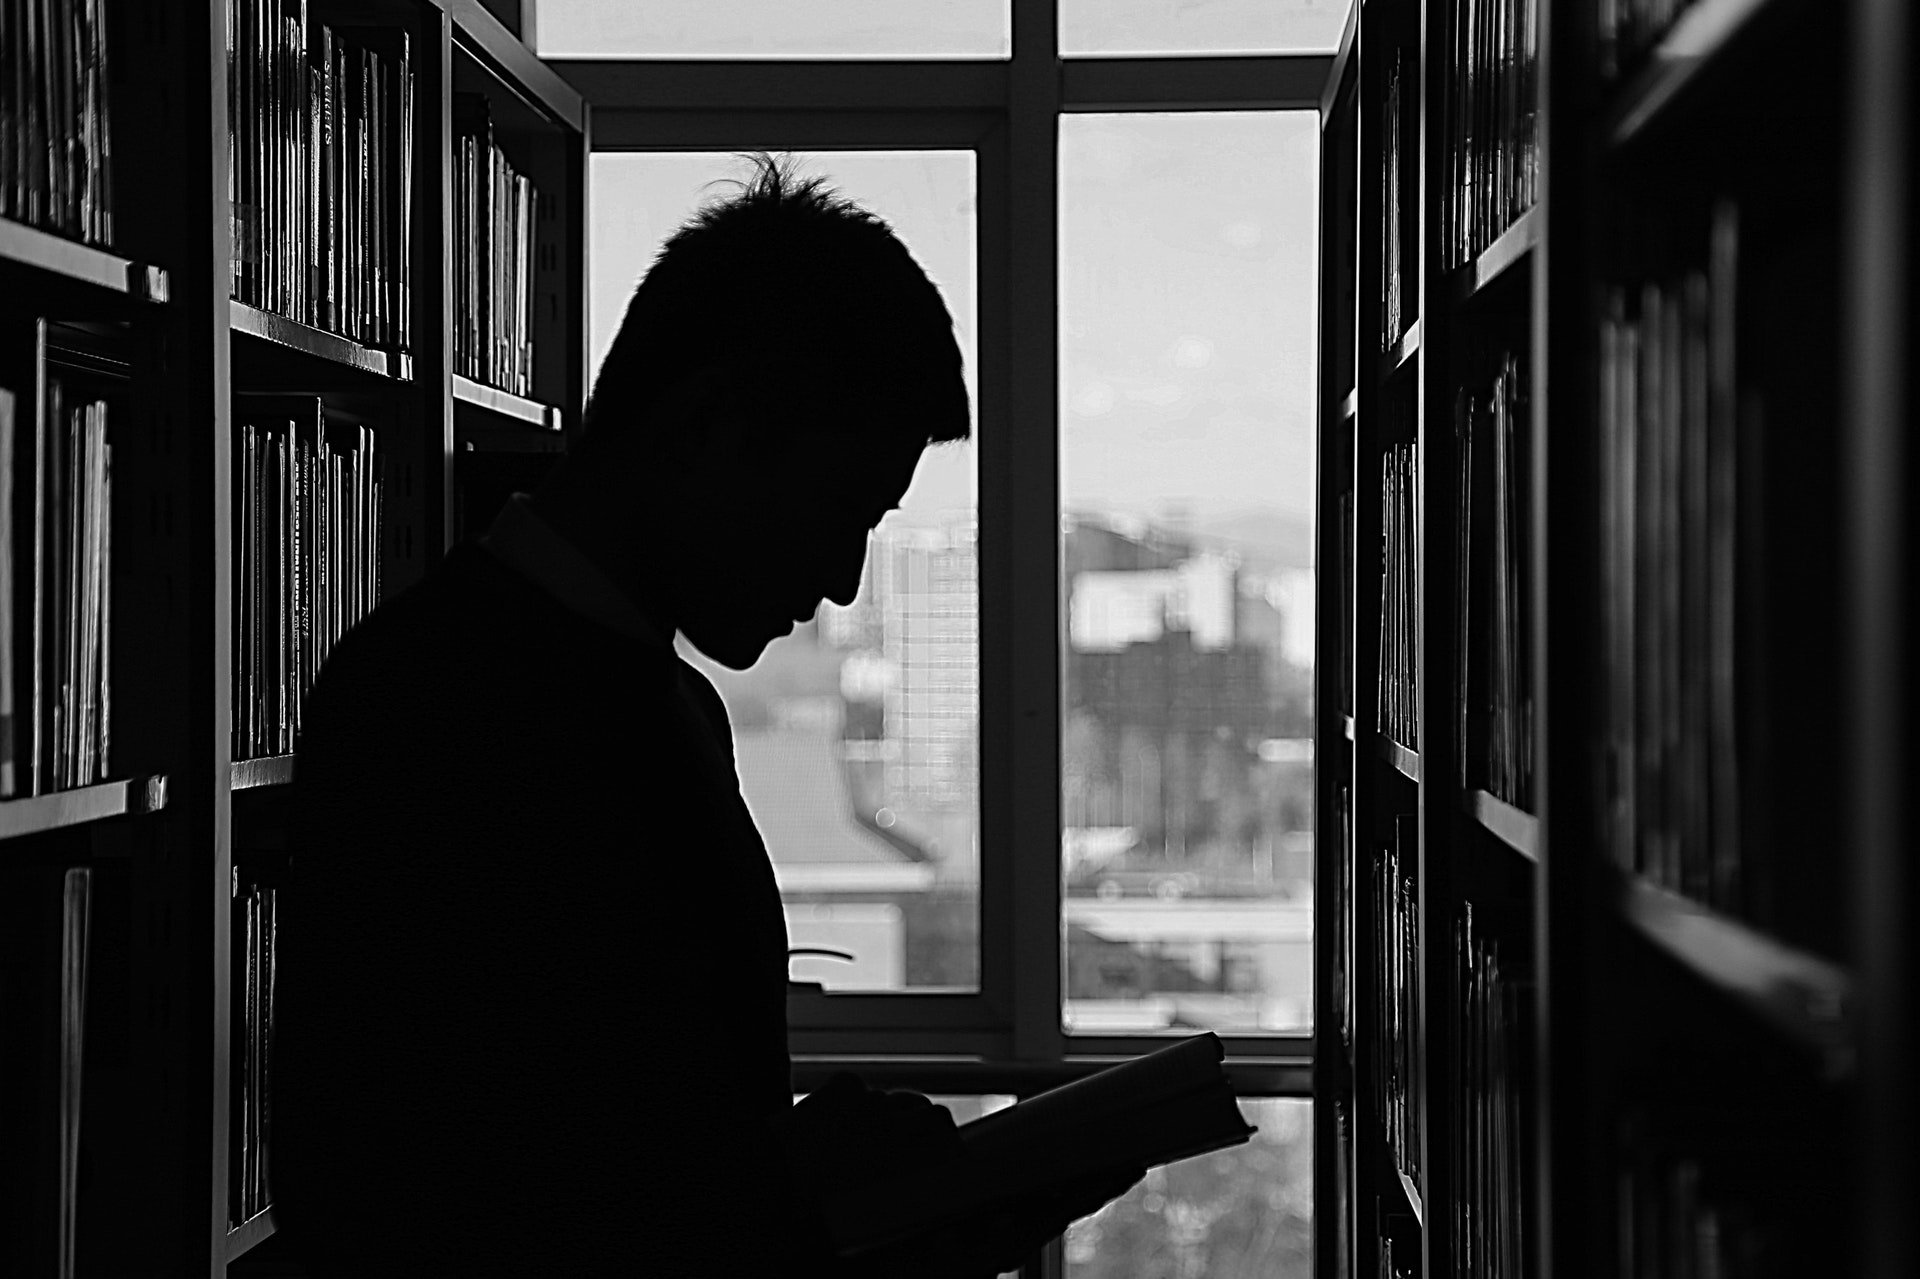 Silhouette of man reading a book in a library